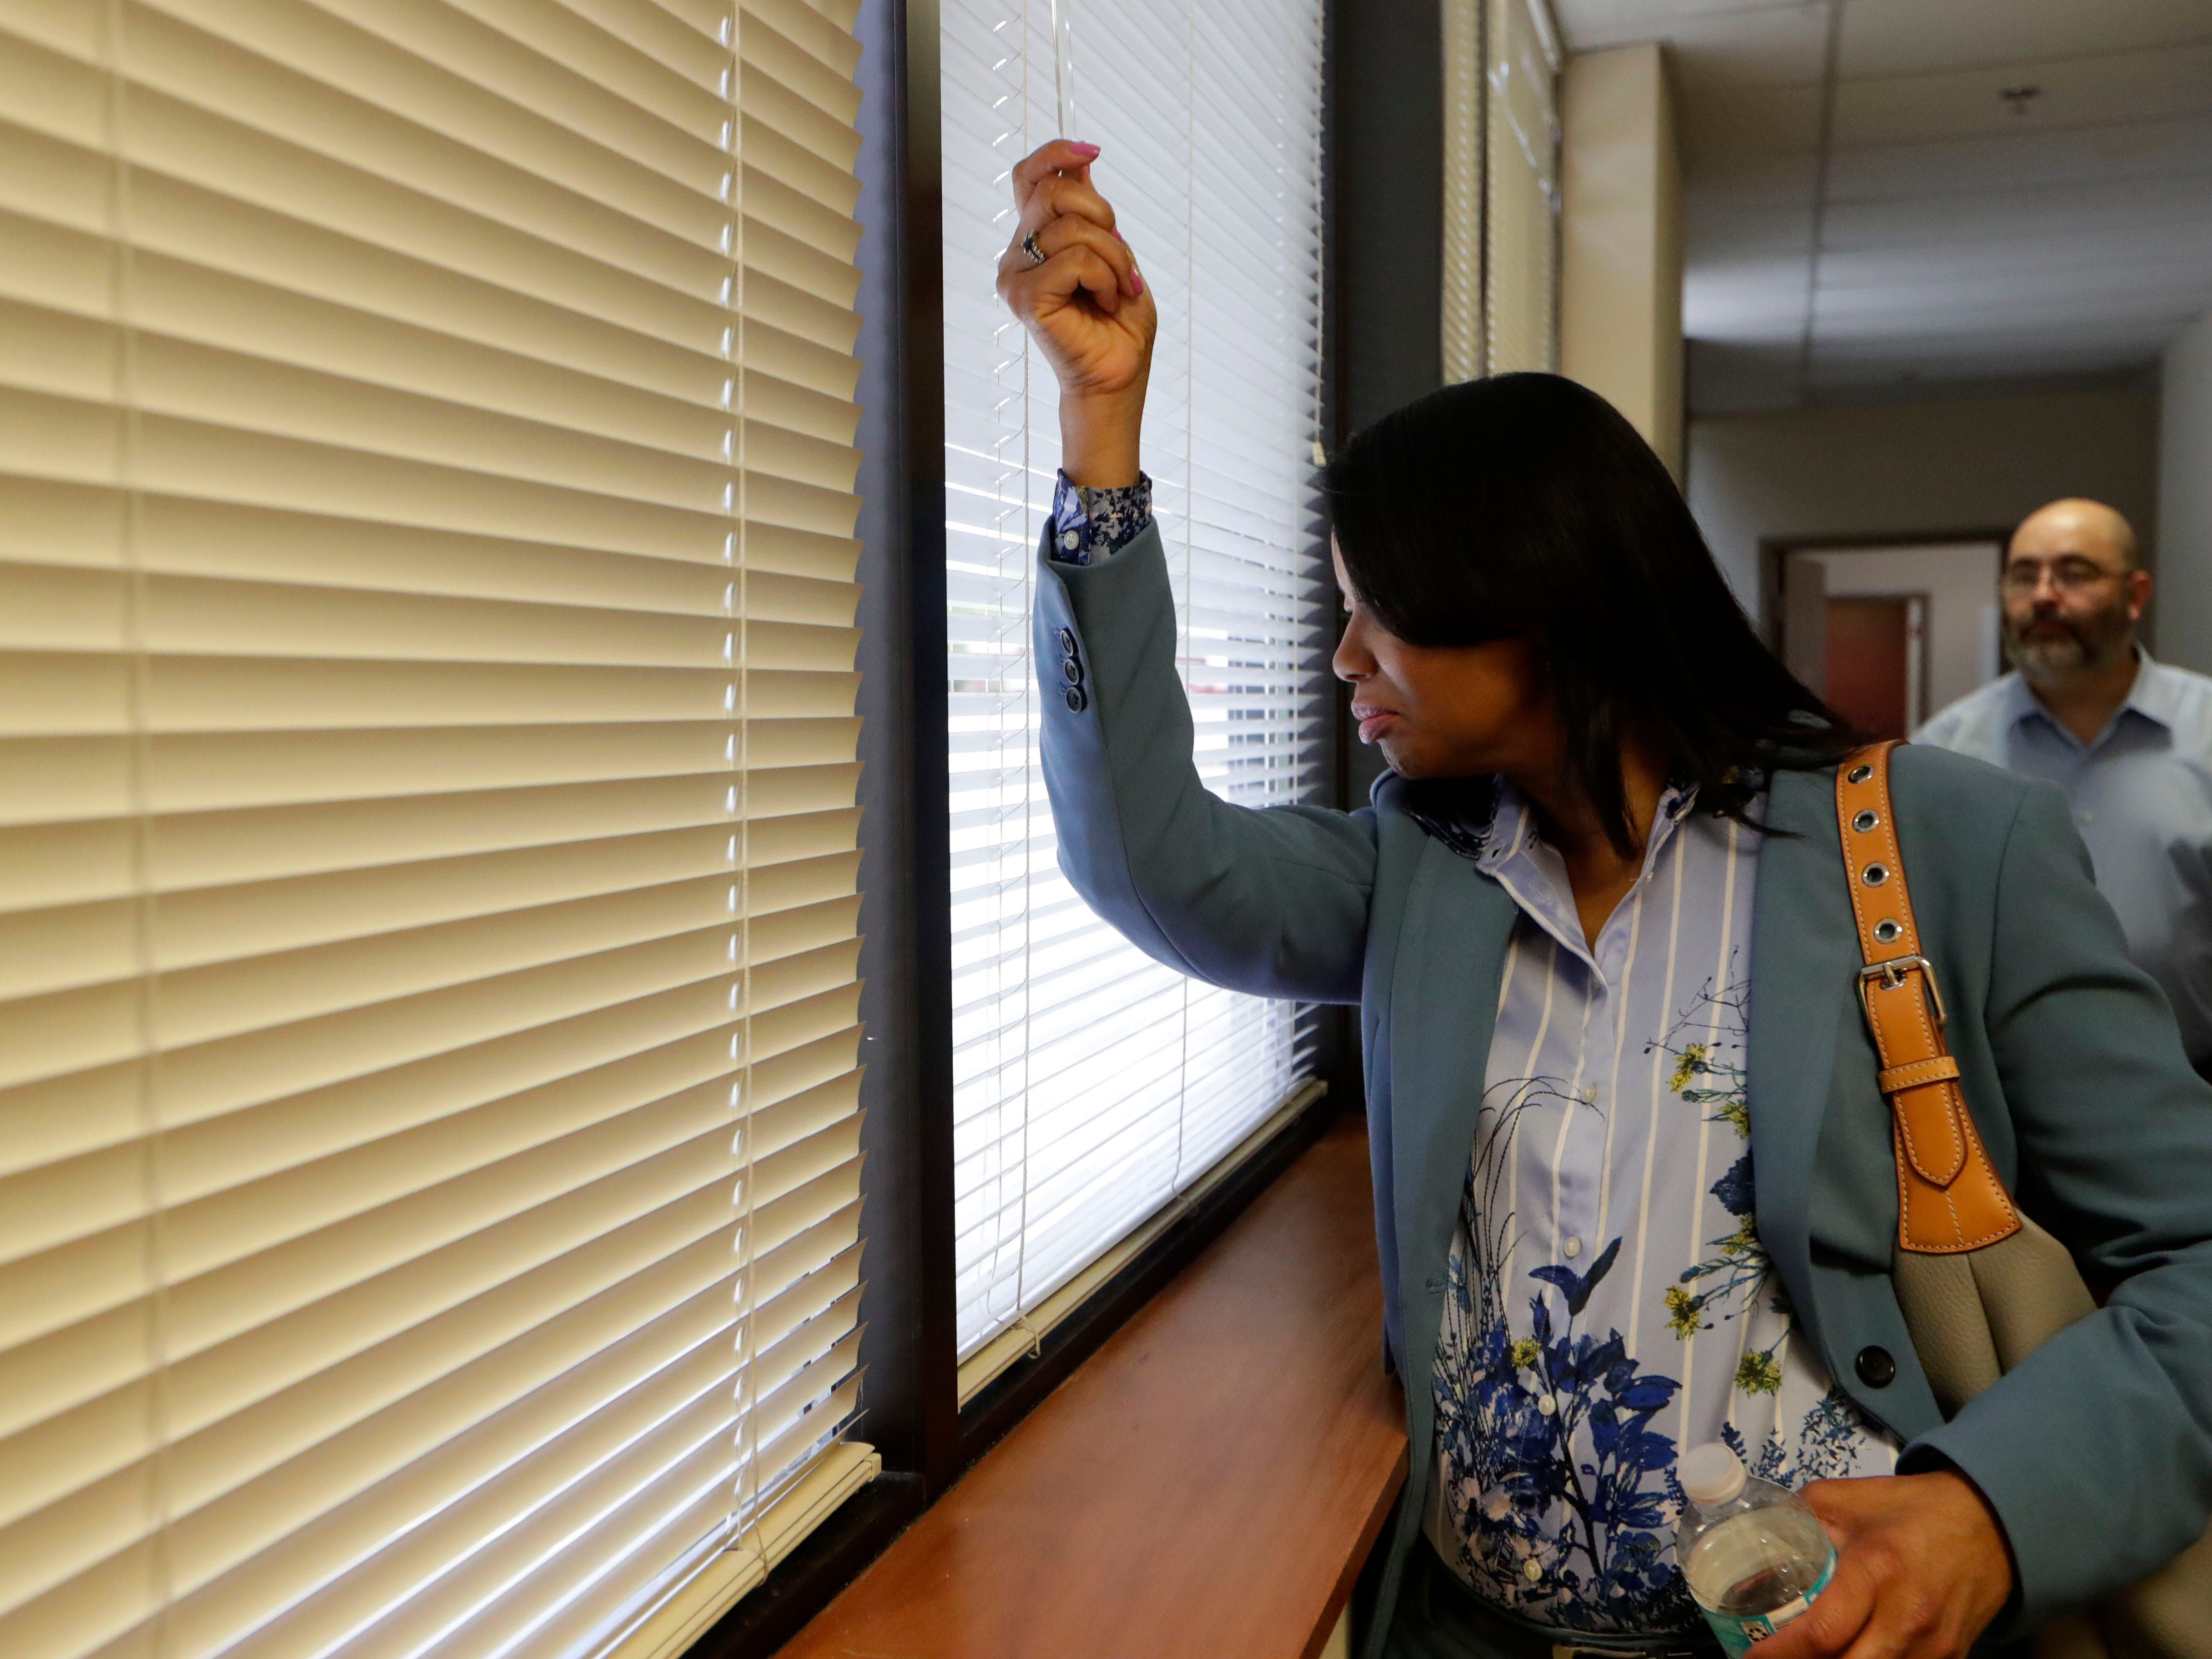 Cassandra Jackson, city attorney, peers through the blinds at a parking lot while touring the Northwood Centre Wednesday, May 8, 2019.